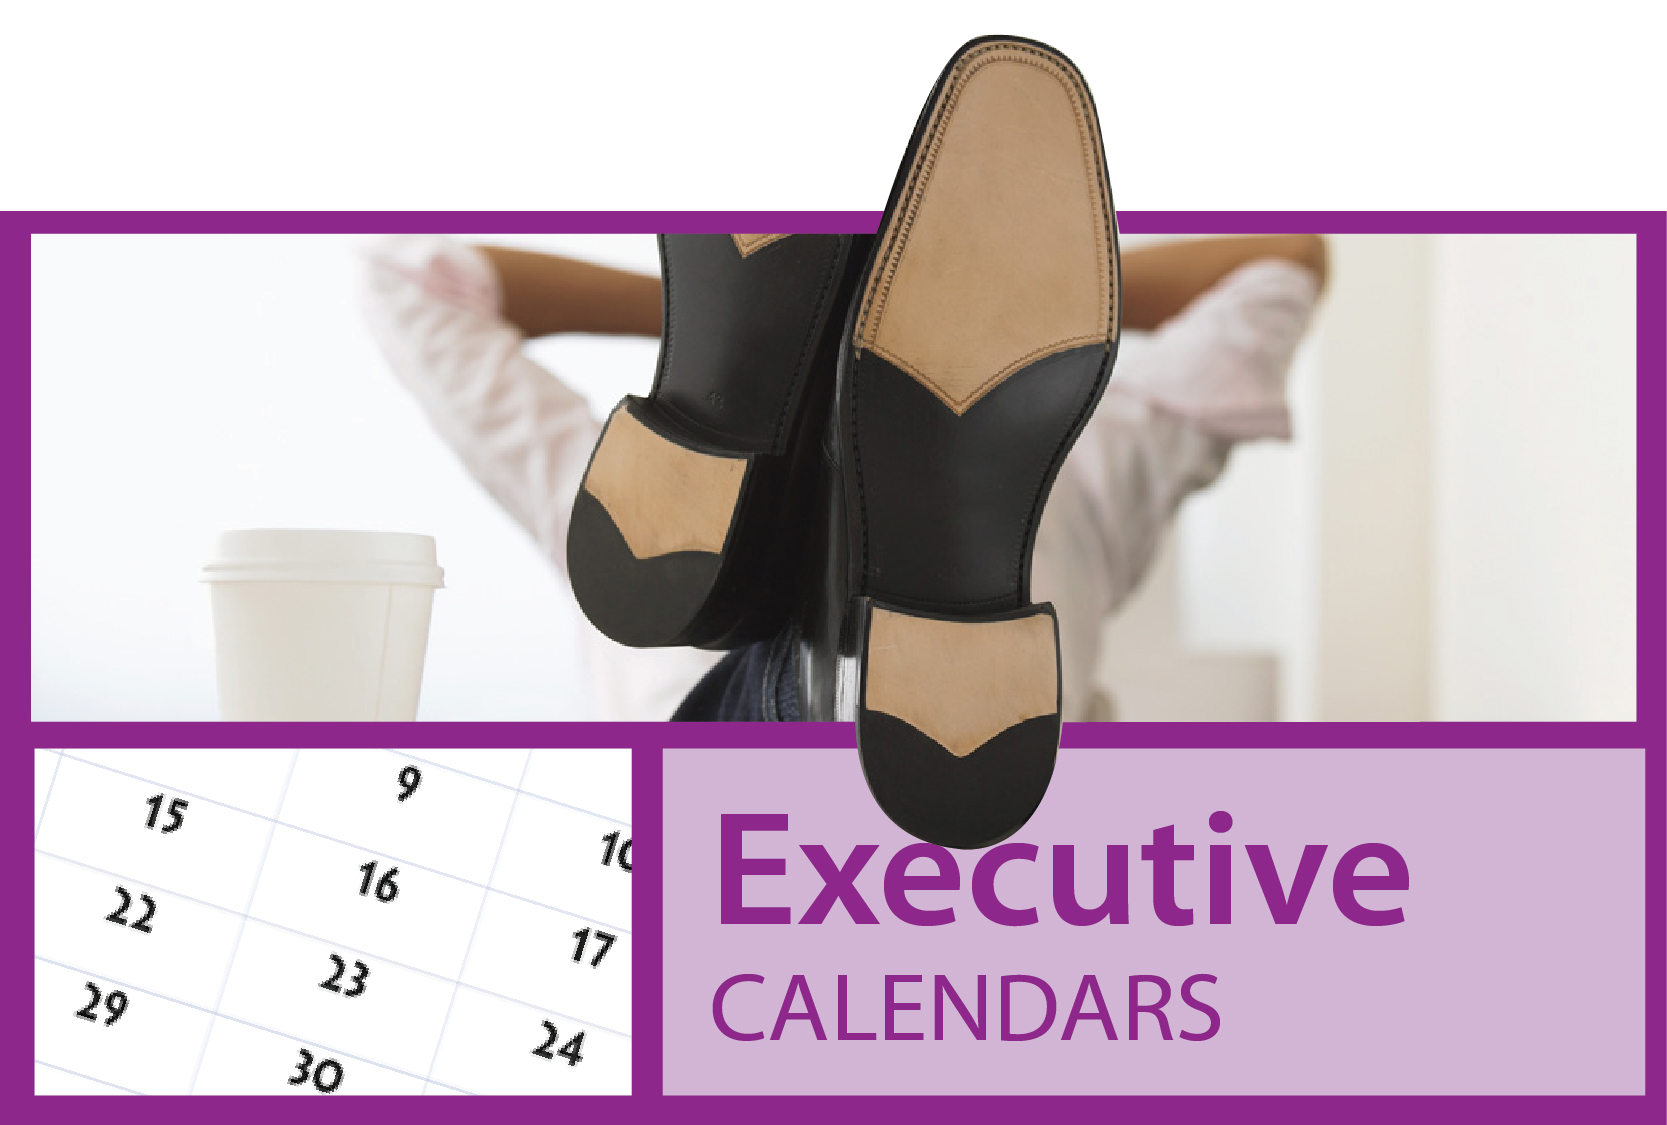 Executive imprint calendars for business